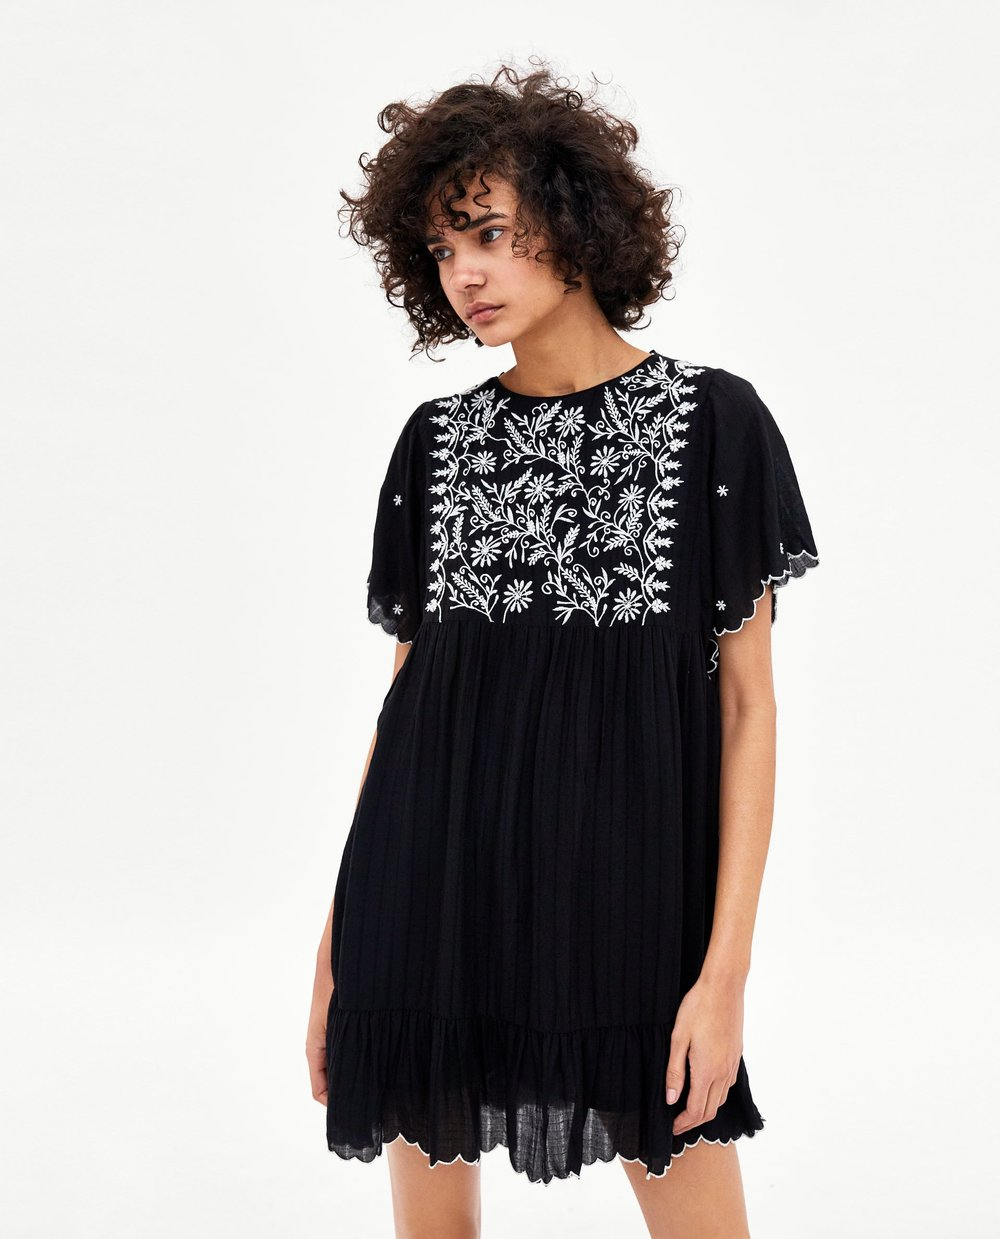 Zara-SHORT-EMBROIDERED-JUMPSUIT-DRESS-black.jpg